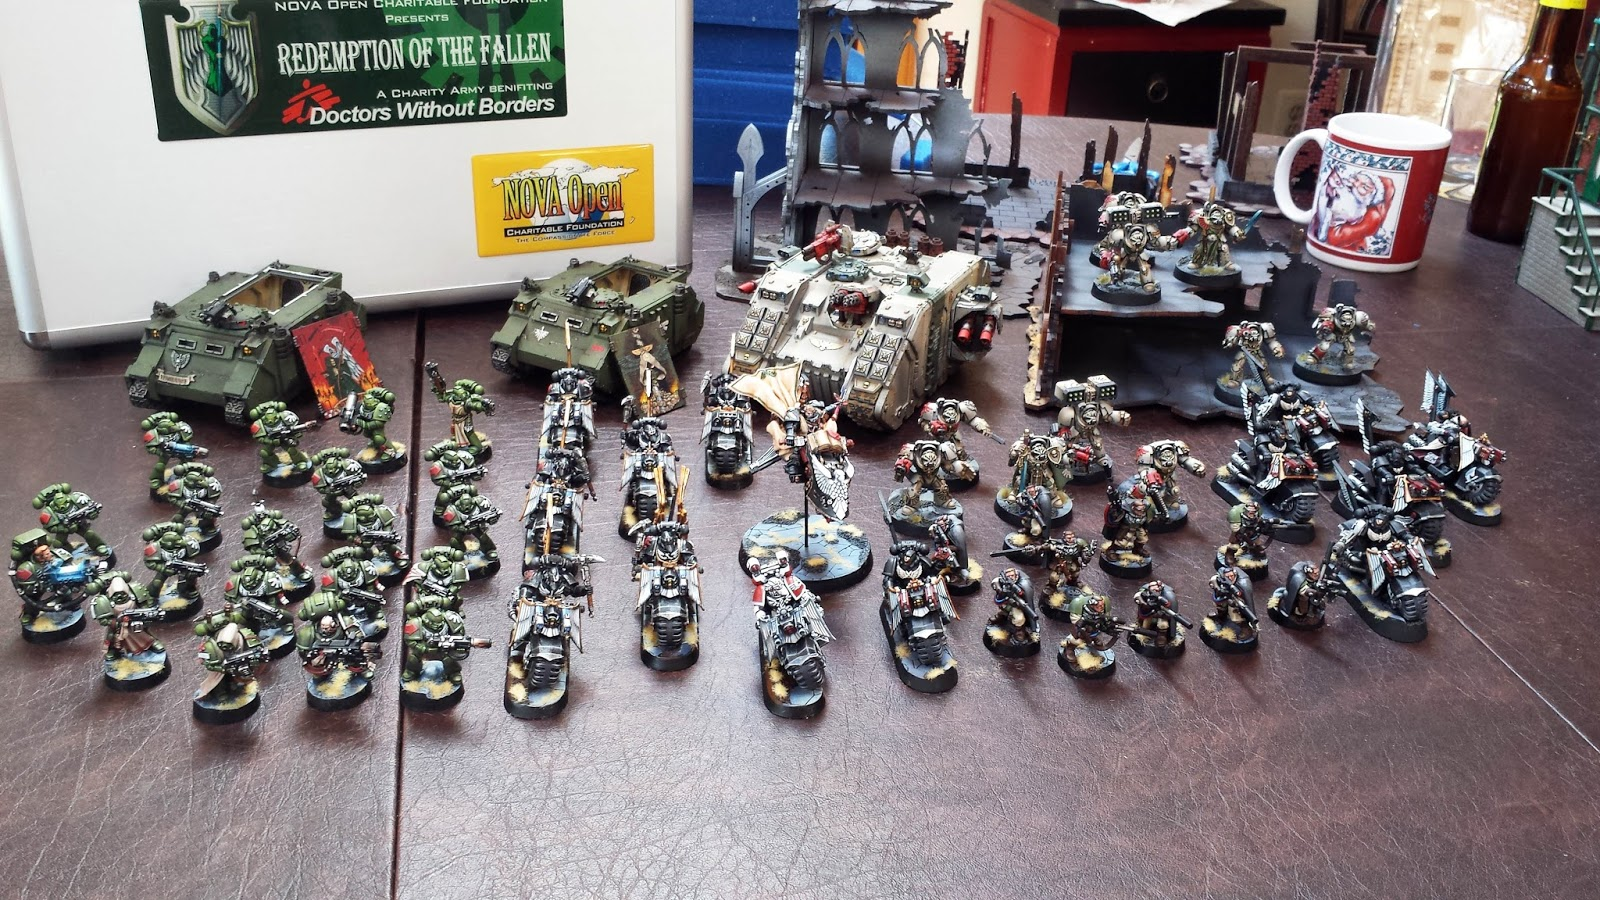 40k Hobby Blog: Redemption of the Fallen Army Shot